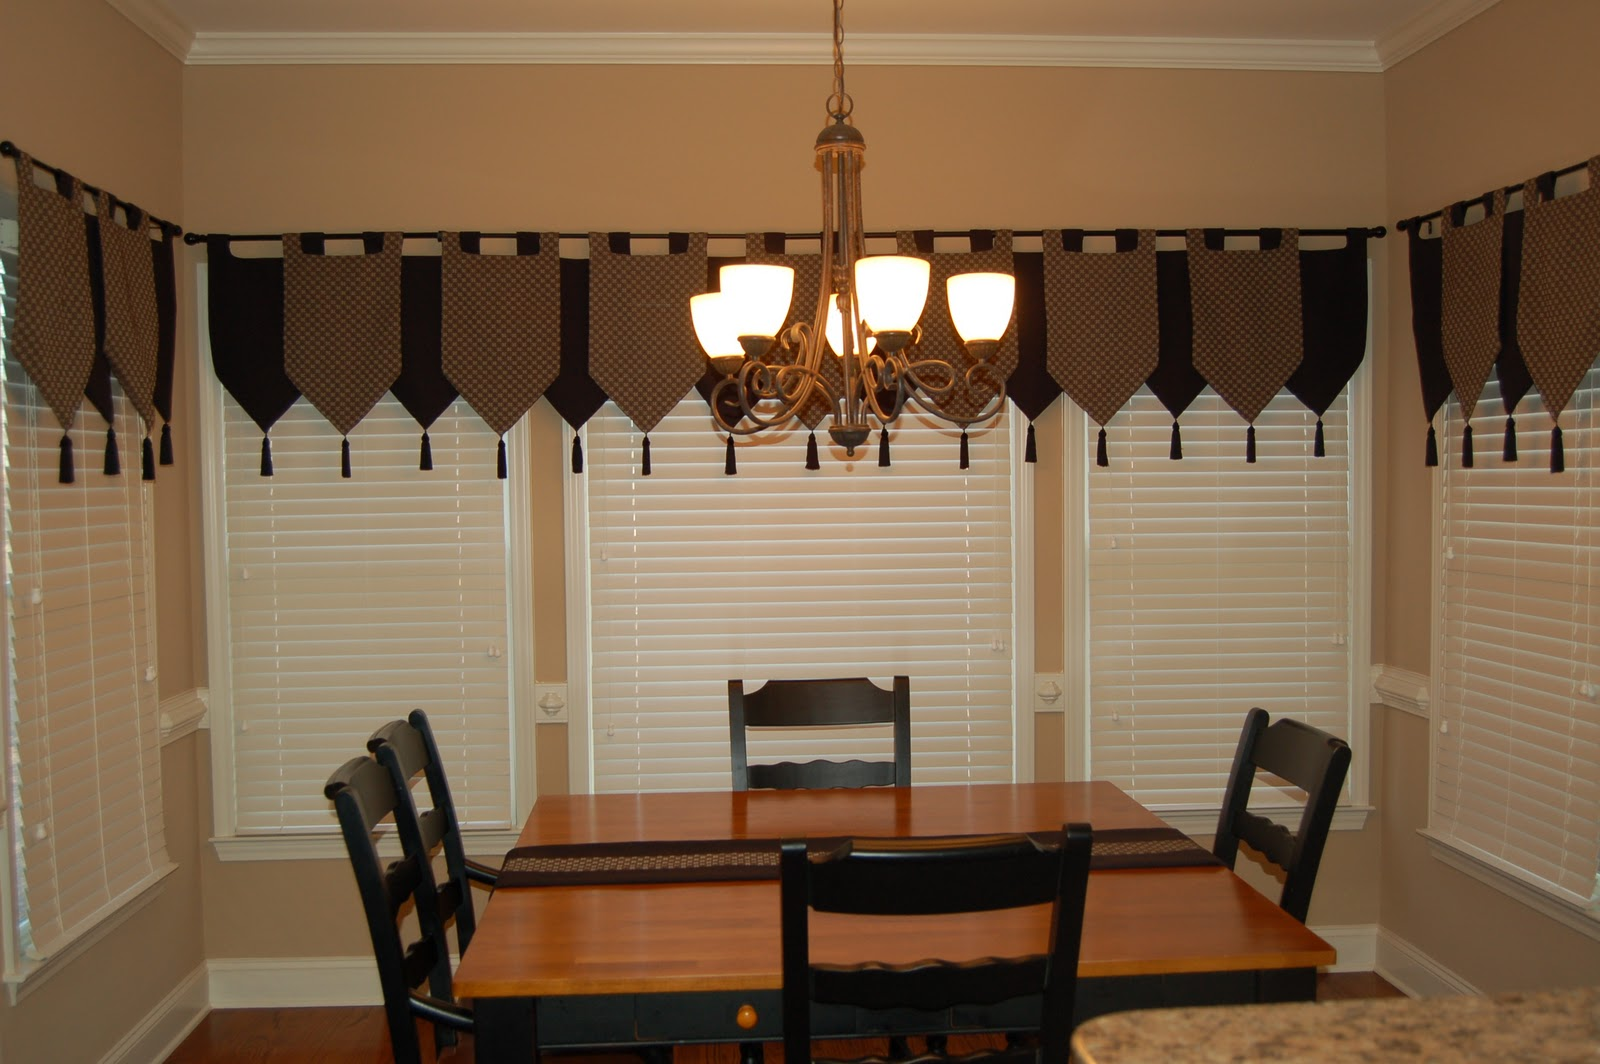 kitchen window valance ideas floral motif kitchen cabinet valance – Kitchen Valances Ideas